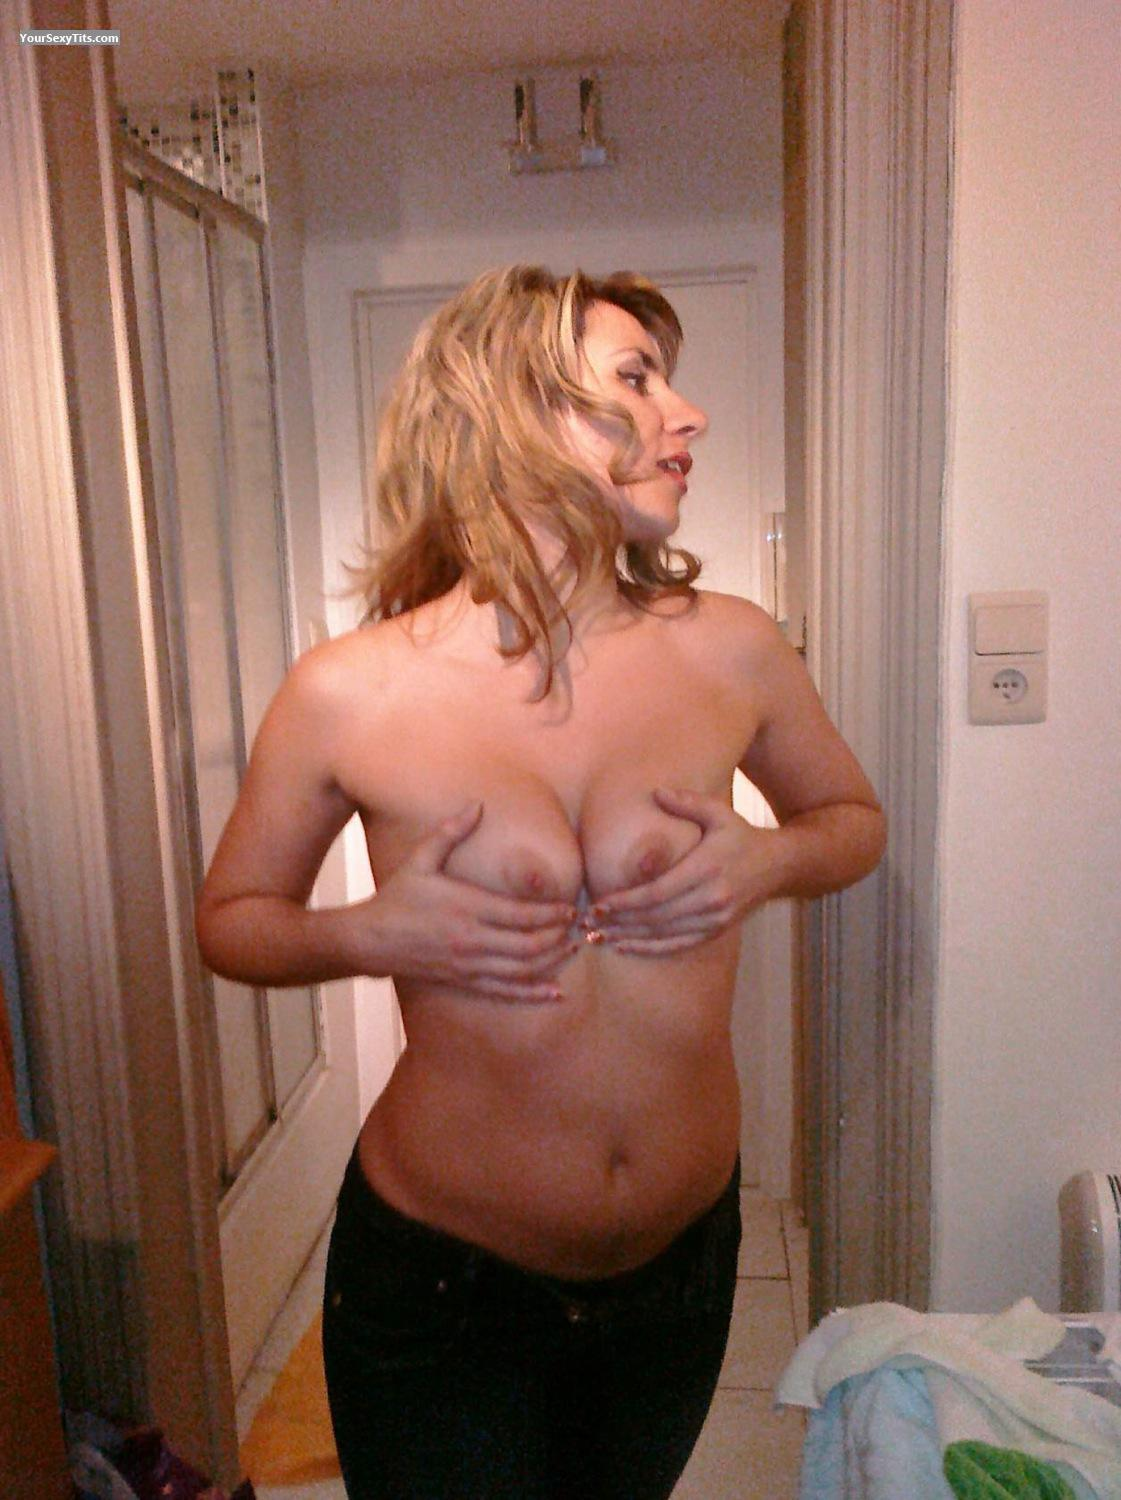 Tit Flash: My Friend's Small Tits - Topless Gala from Russian Federation